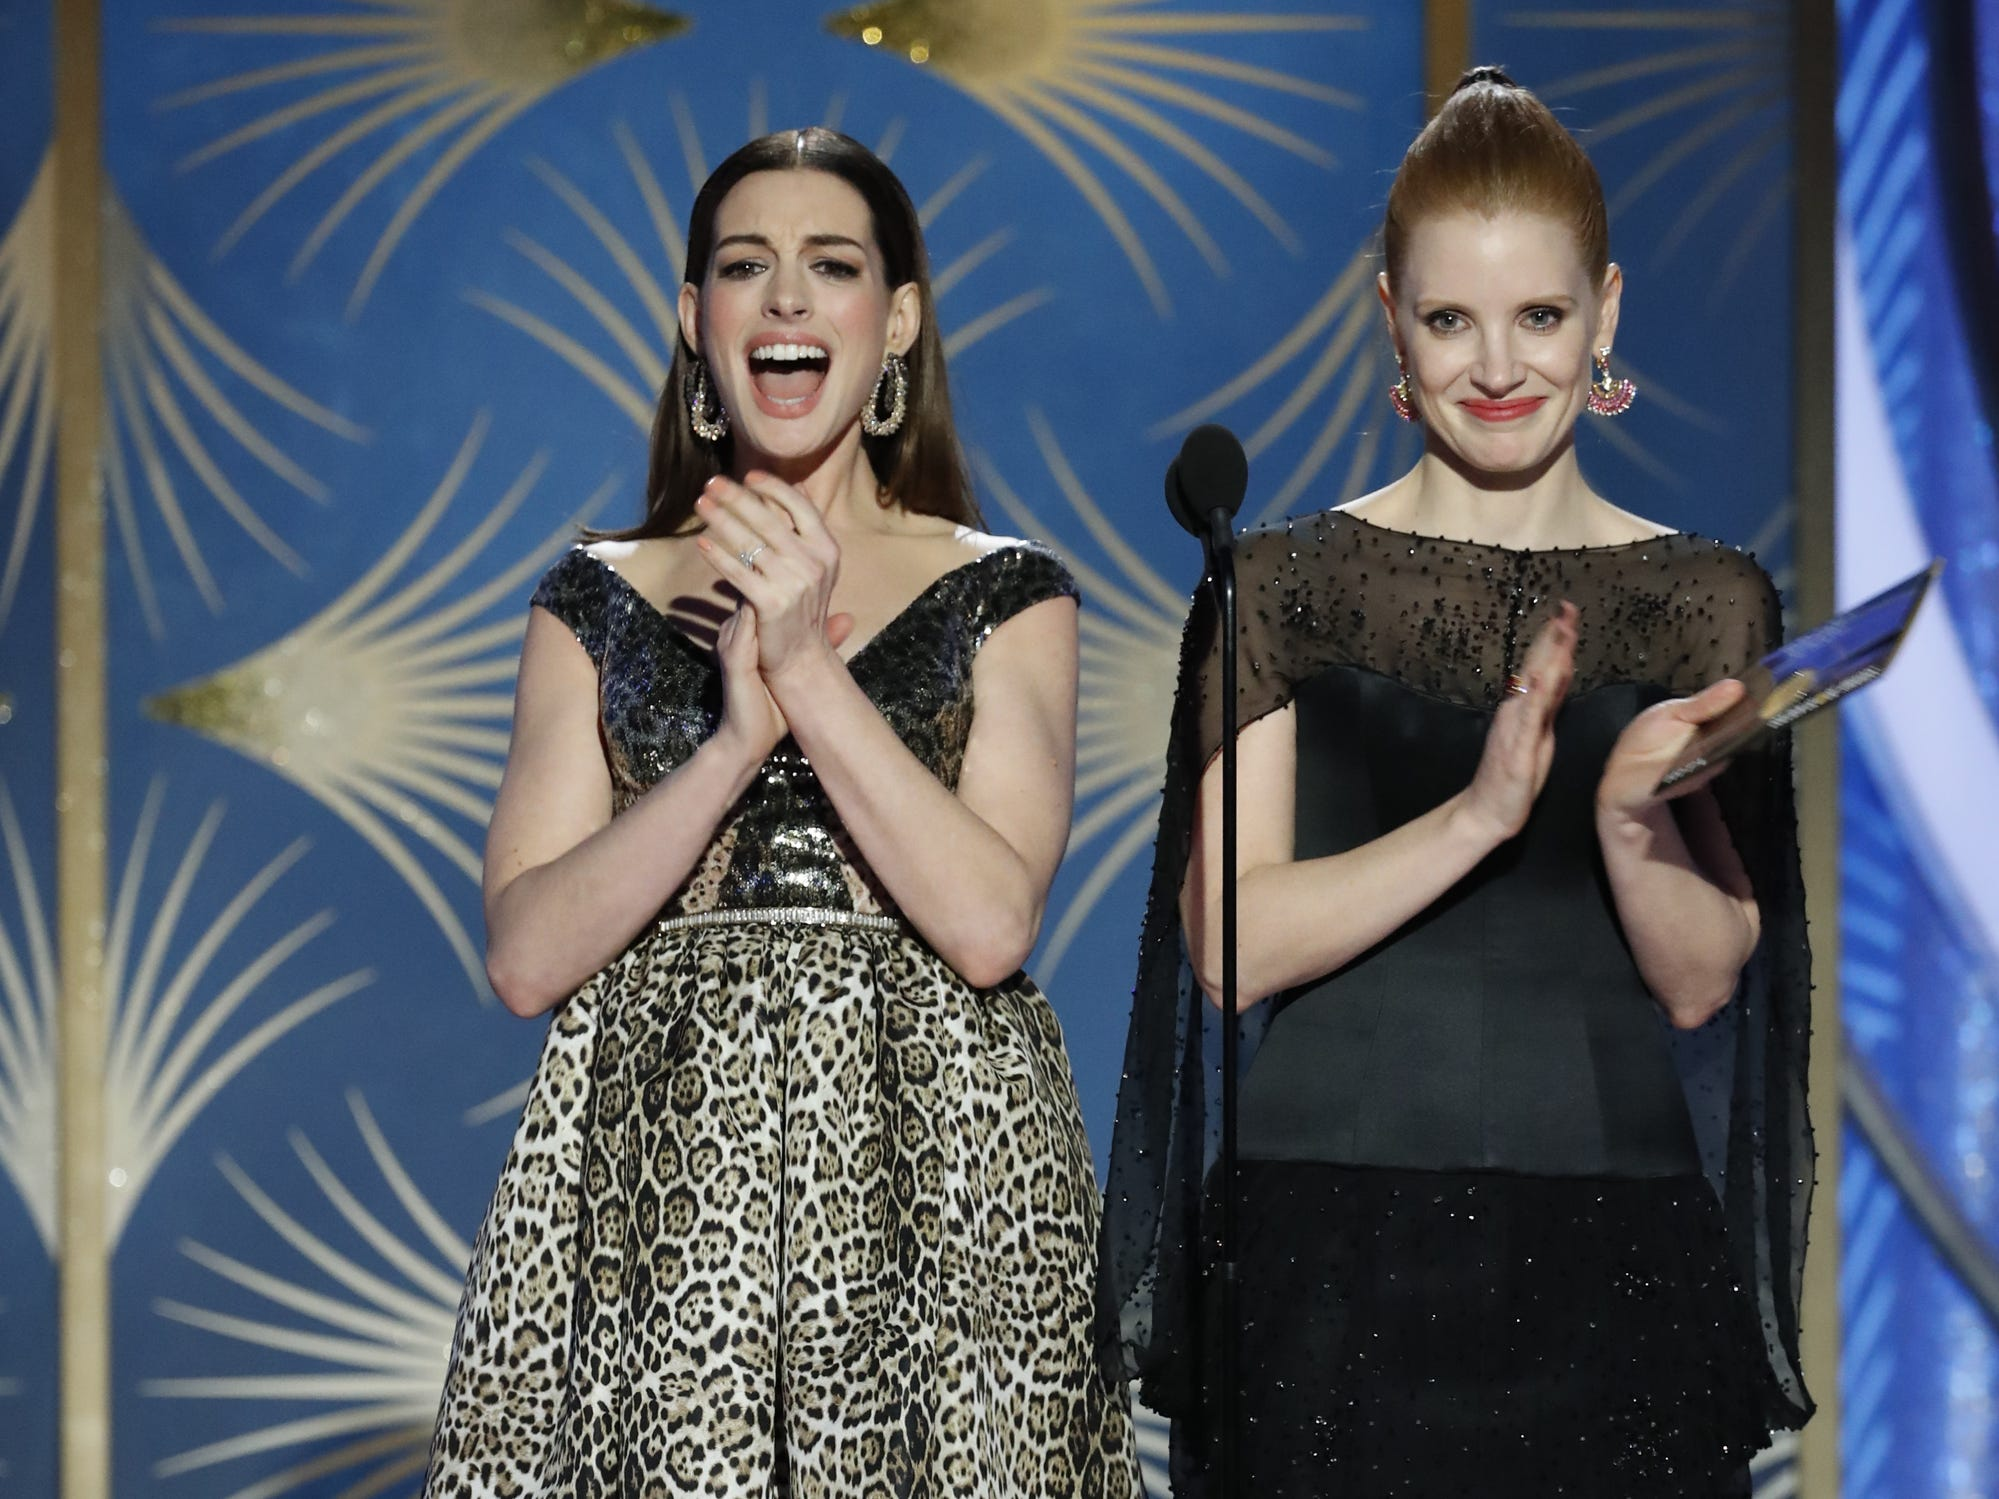 Anne Hathaway and Jessica Chastain present during the 76th Golden Globe Awards.